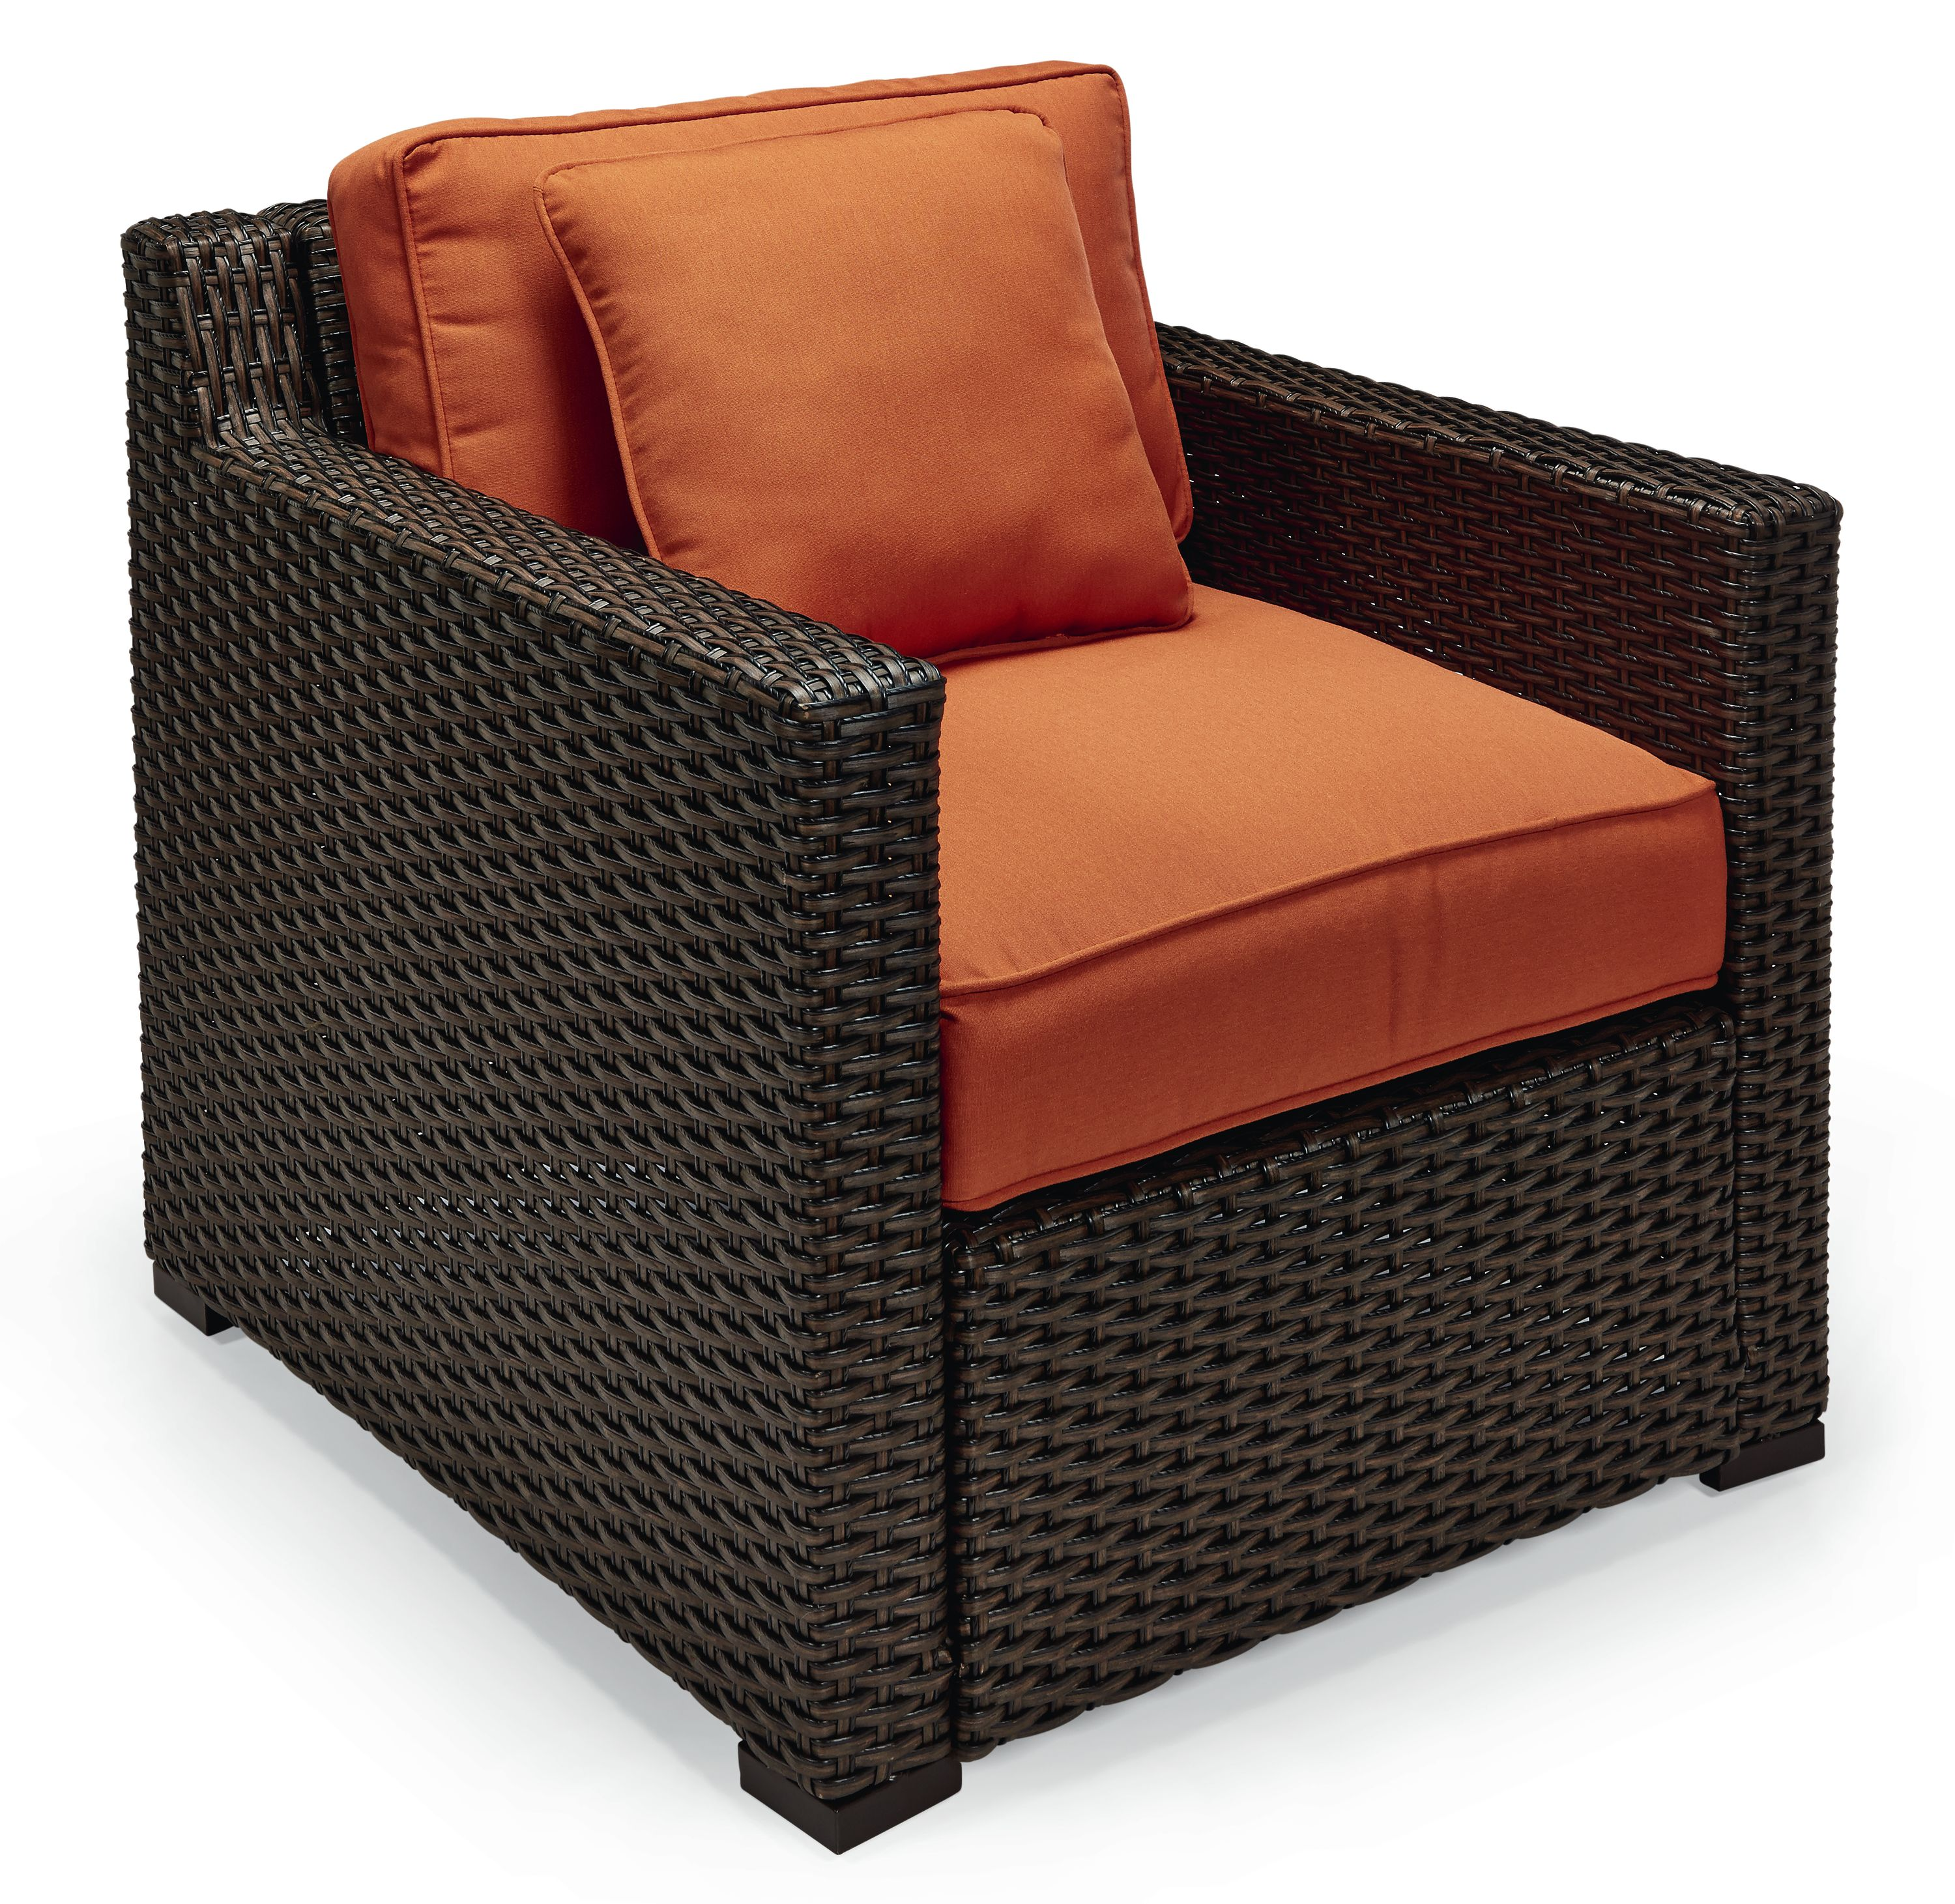 Agio International Moore Haven Woven Club Chair- Rust